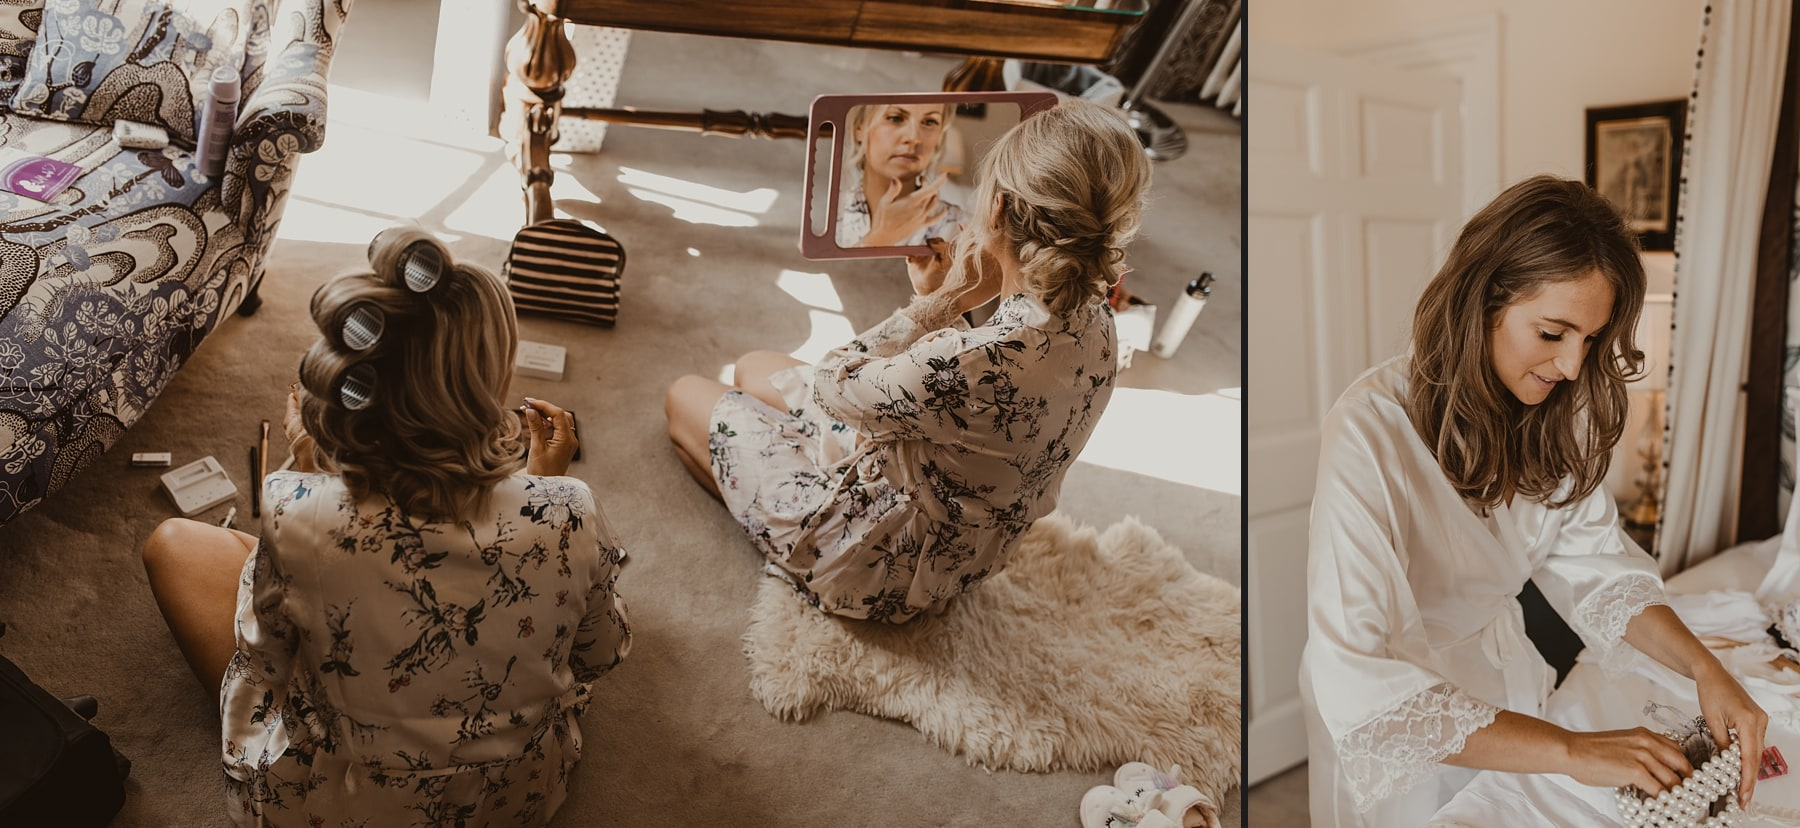 Bridesmaid applying make up in mirror